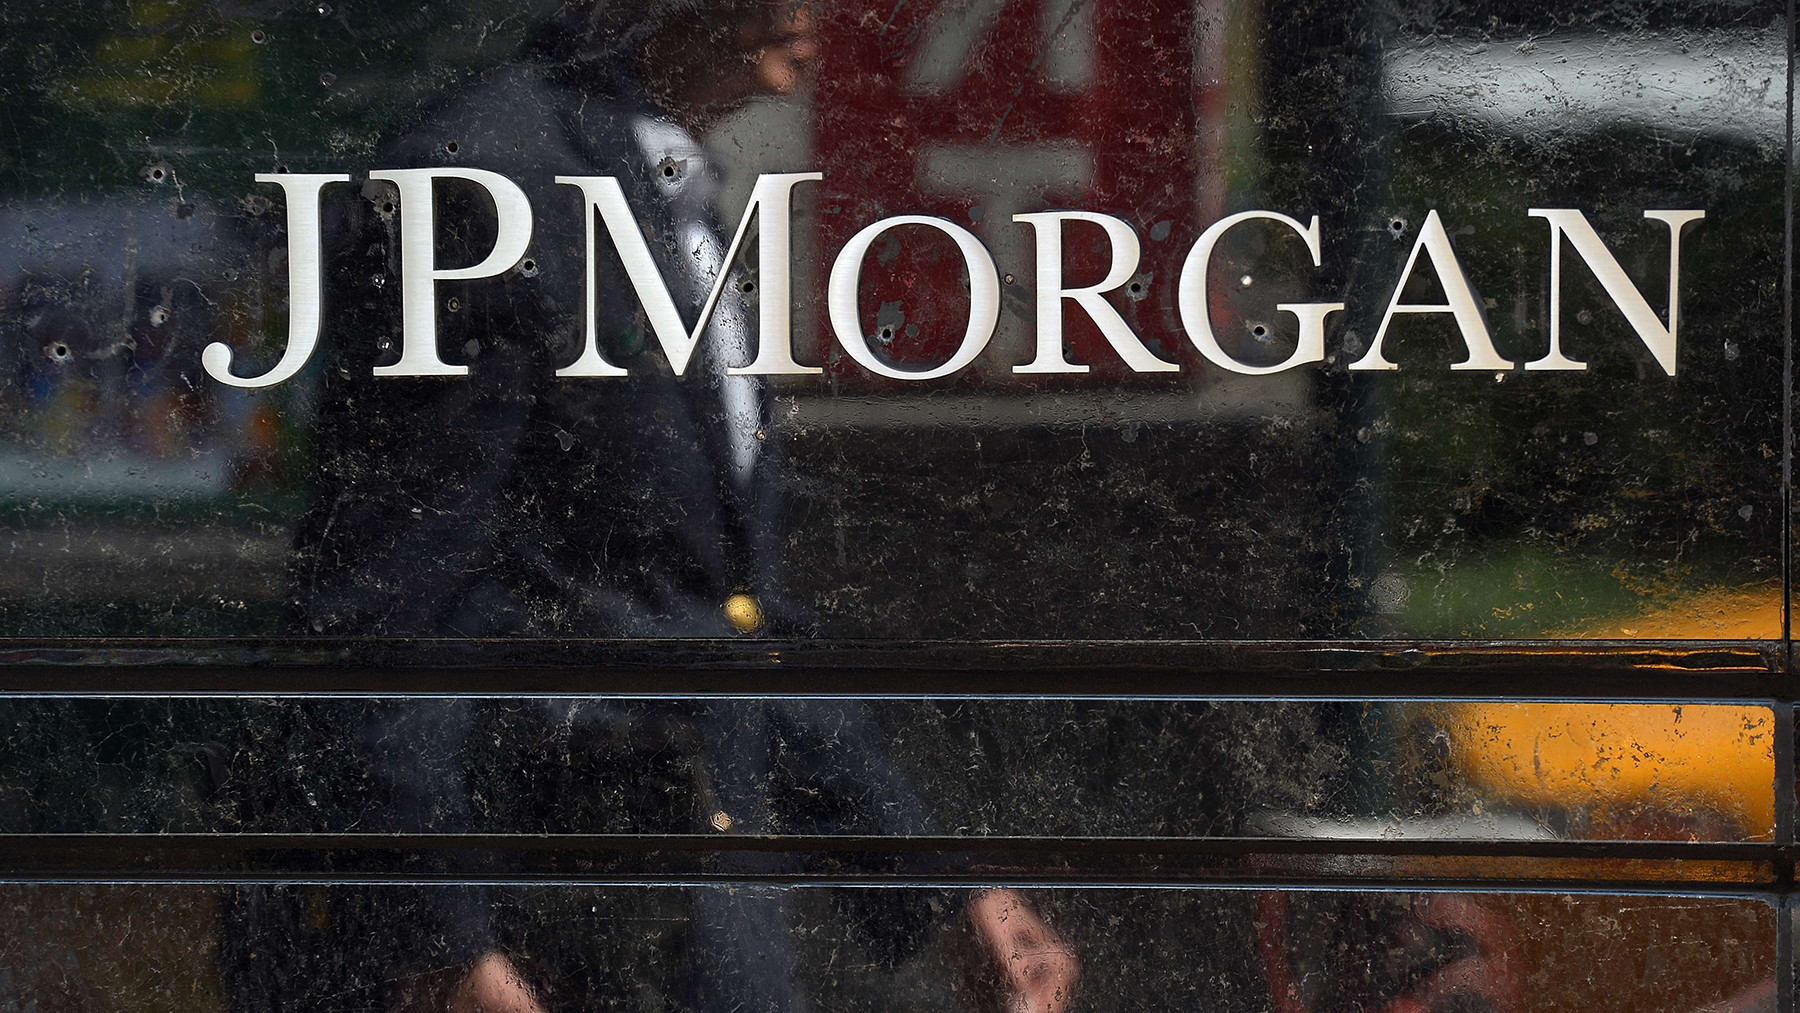 JPMorgan says data breach affected 76 million households